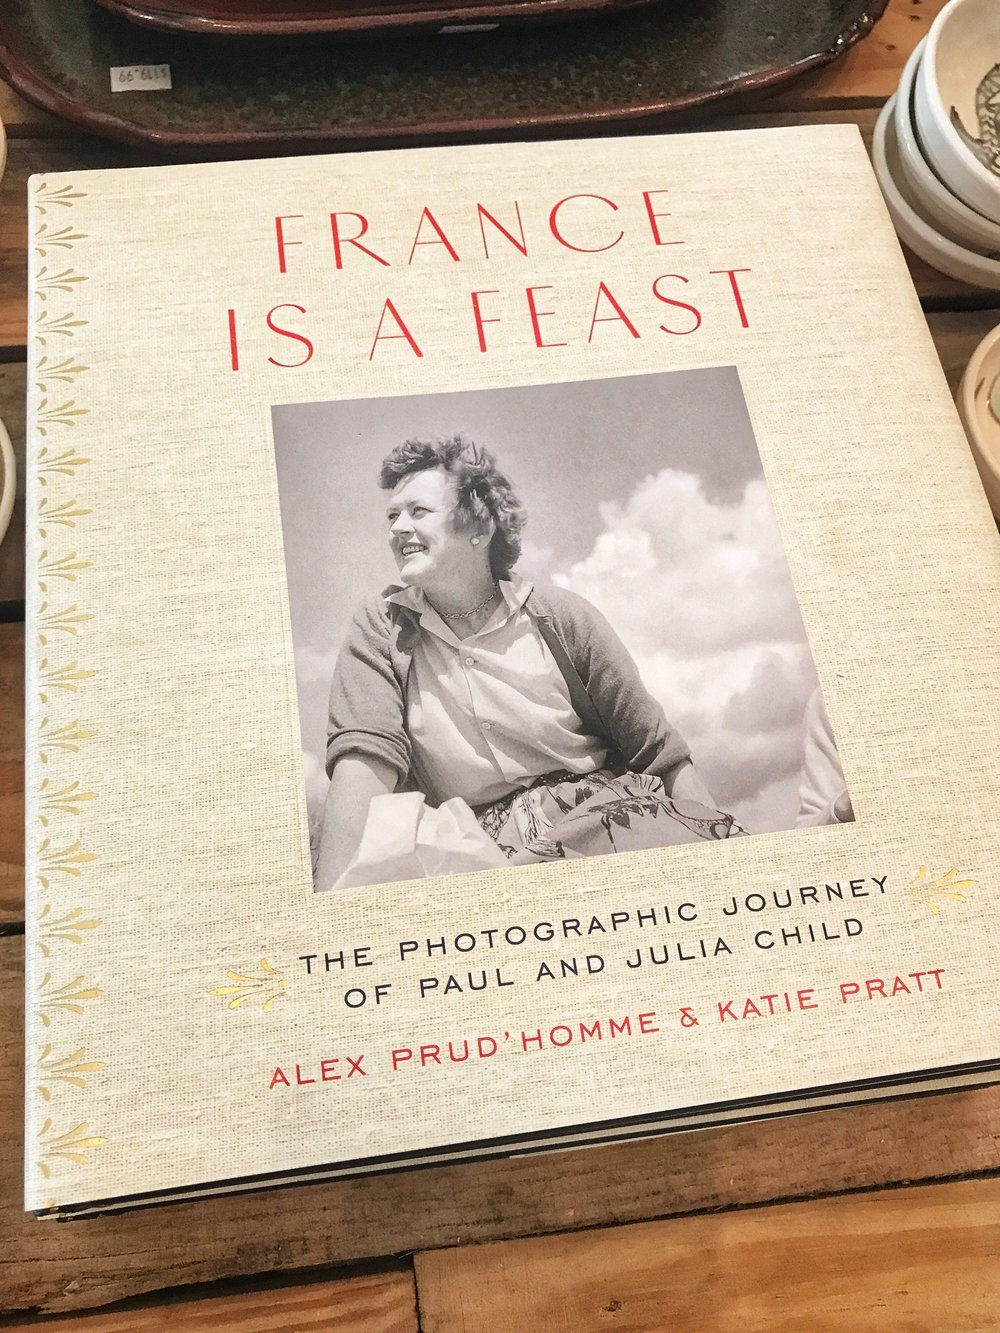 """Thoroughly delicious… Comprised of 225 black-and-white photographs by Paul Child, the husband of Julia Child, taken during the couple's time in France beginning in 1948, this intimate photo album delivers mesmerizing visual addenda to Julia Child's memoir, My Life in France. Zeroing in on postwar Paris, the book covers the couple's early years in France and yields a unique perspective on postwar Europe as well as on the backstory of the woman whose name is synonymous with French cuisine in 20th-century America. The collection includes photos of Julia's days at the Cordon Bleu with fellow chefs, as well as snapshots of her at work amid pots and pans in the tiny kitchen of the couple's Paris apartment. In other photos, Paul plays with shadows and angles while shooting the streets of Paris or the fields of the French countryside. There are also the more everyday traveler's shots featuring a leggy Julia that illuminate the love story between the photographer and his muse."" - Publishers Weekly"